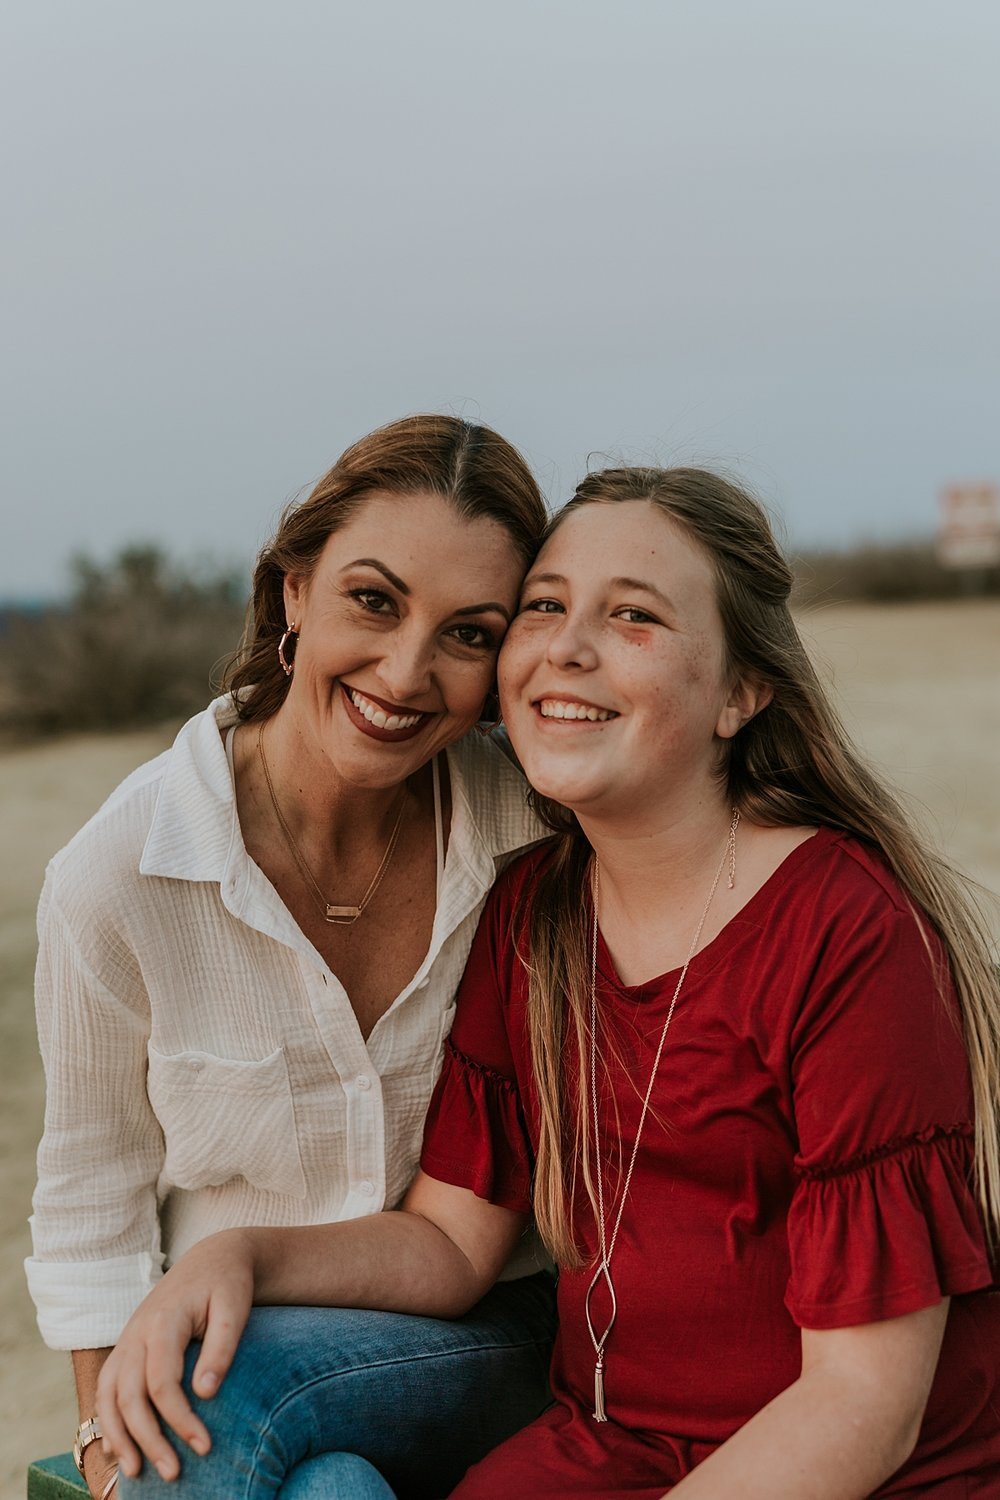 Orange County family photographer. Photo of mom and daughter by Krystil McDowall Photography